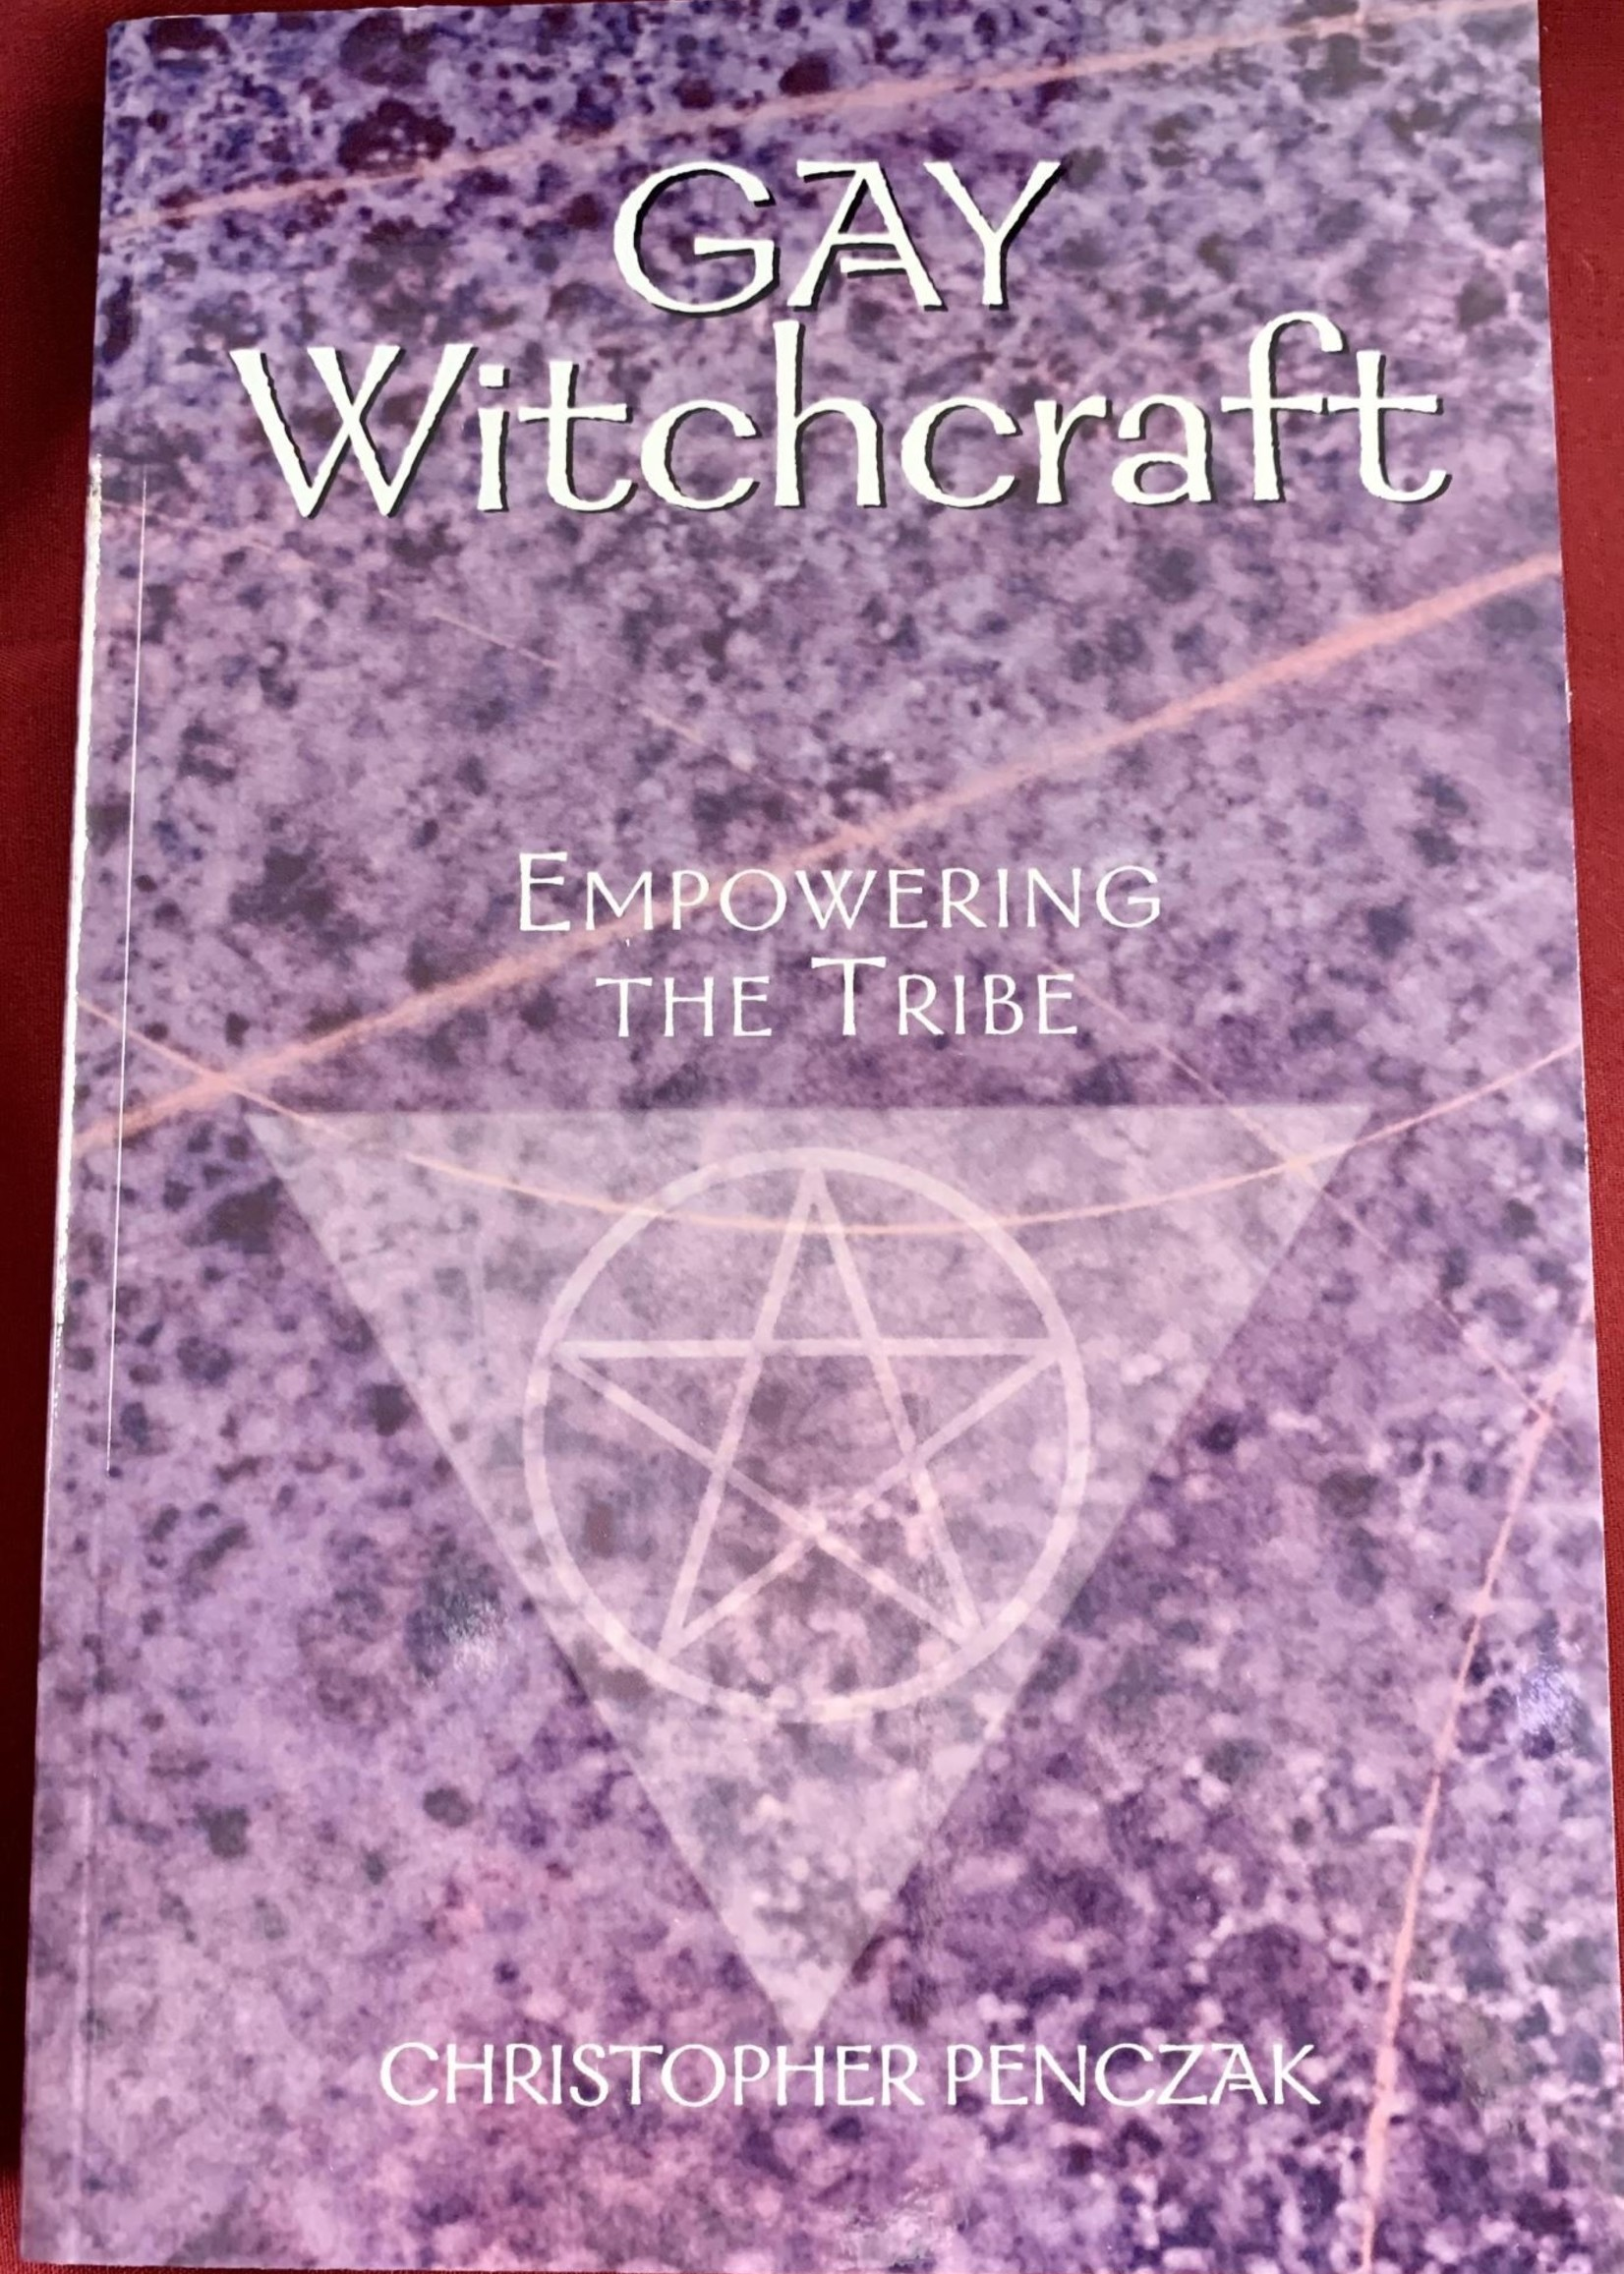 Gay Witchcraft Empowering the Tribe - Christopher Penczak